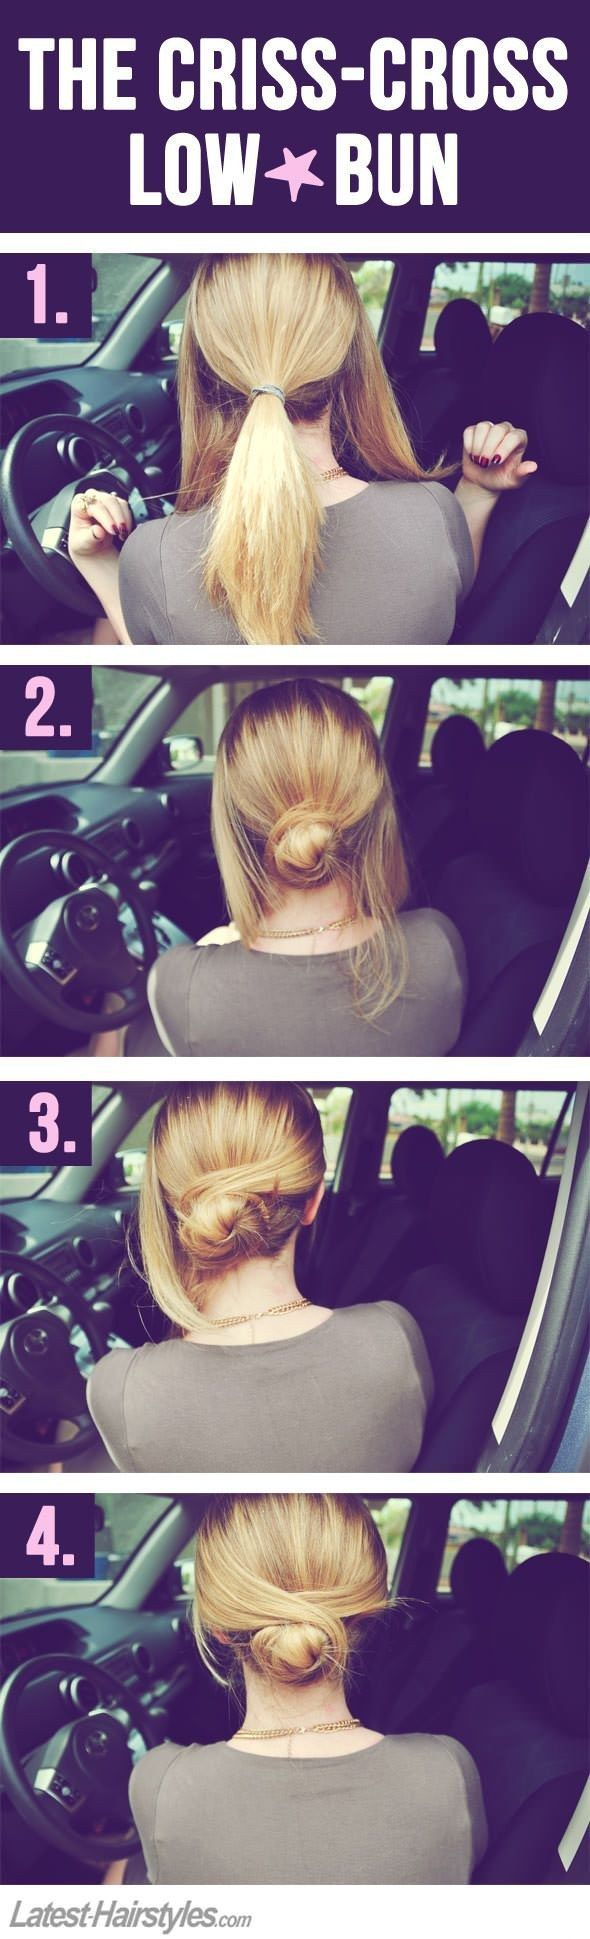 Criss-cross your hair into this simple low bun.